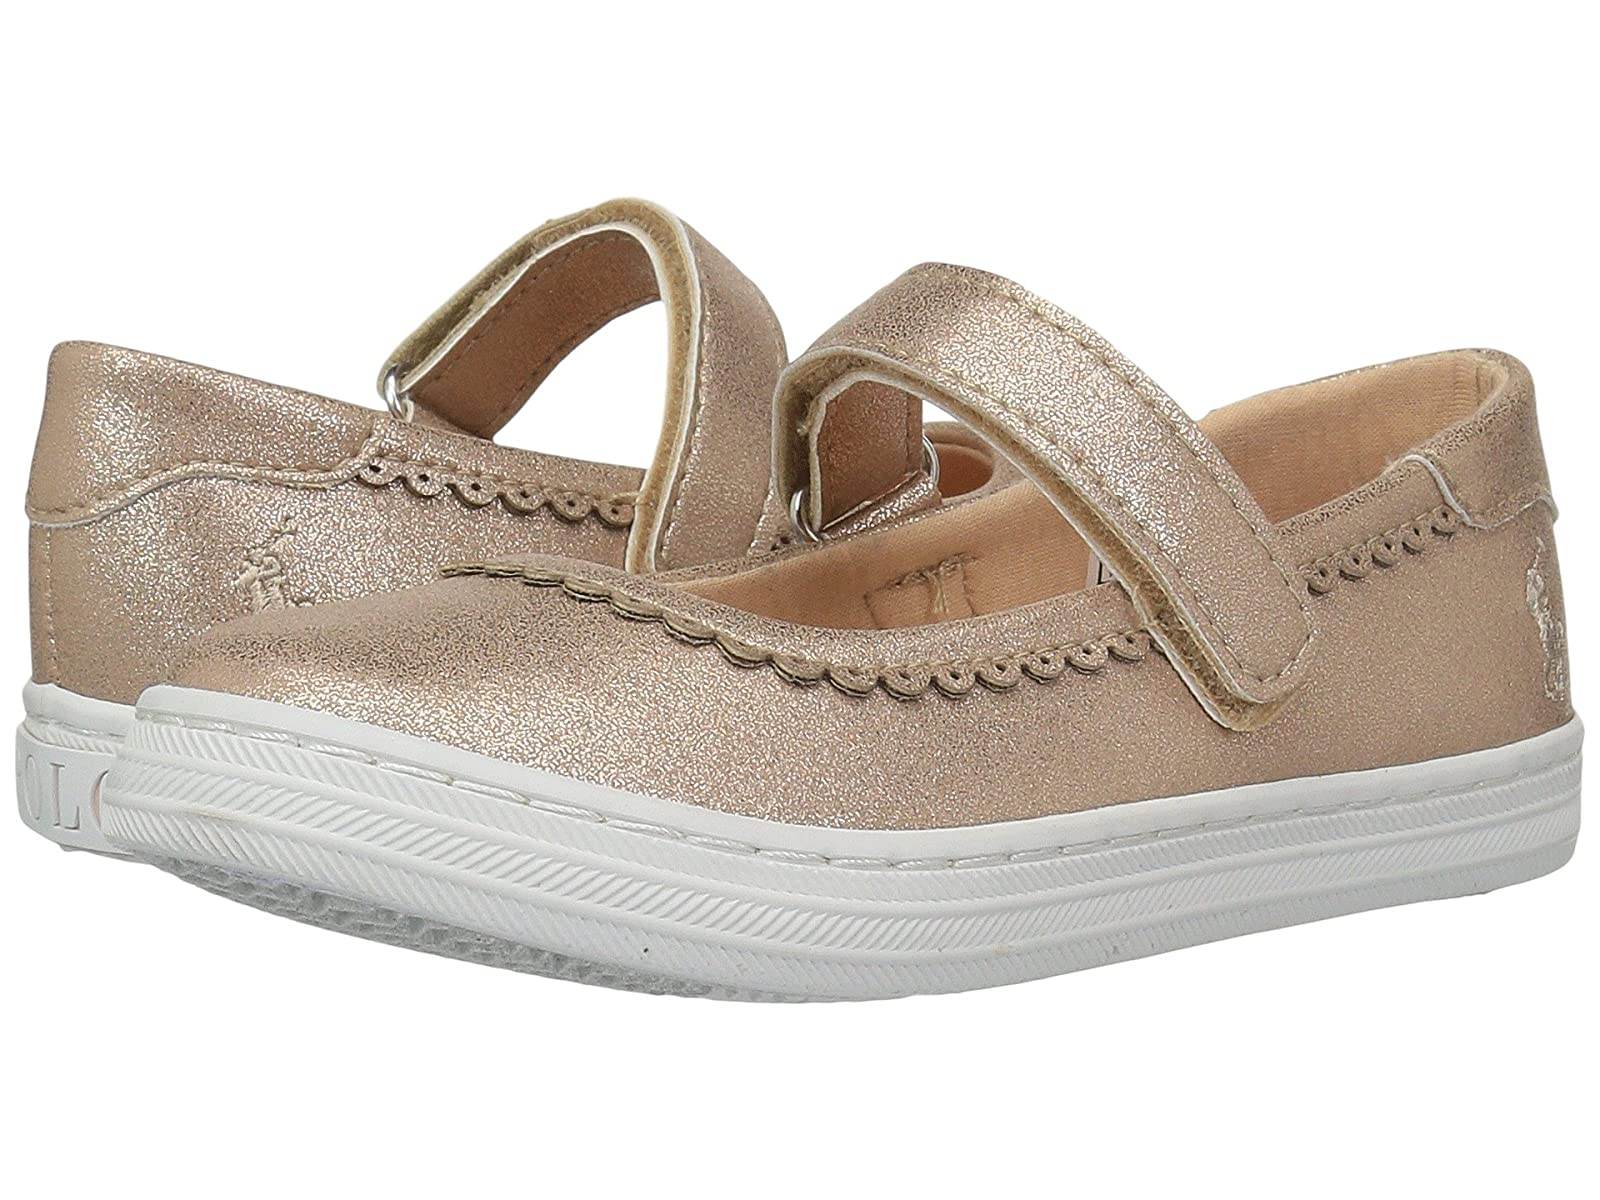 Polo Ralph Lauren Kids Pella (Toddler)Atmospheric grades have affordable shoes